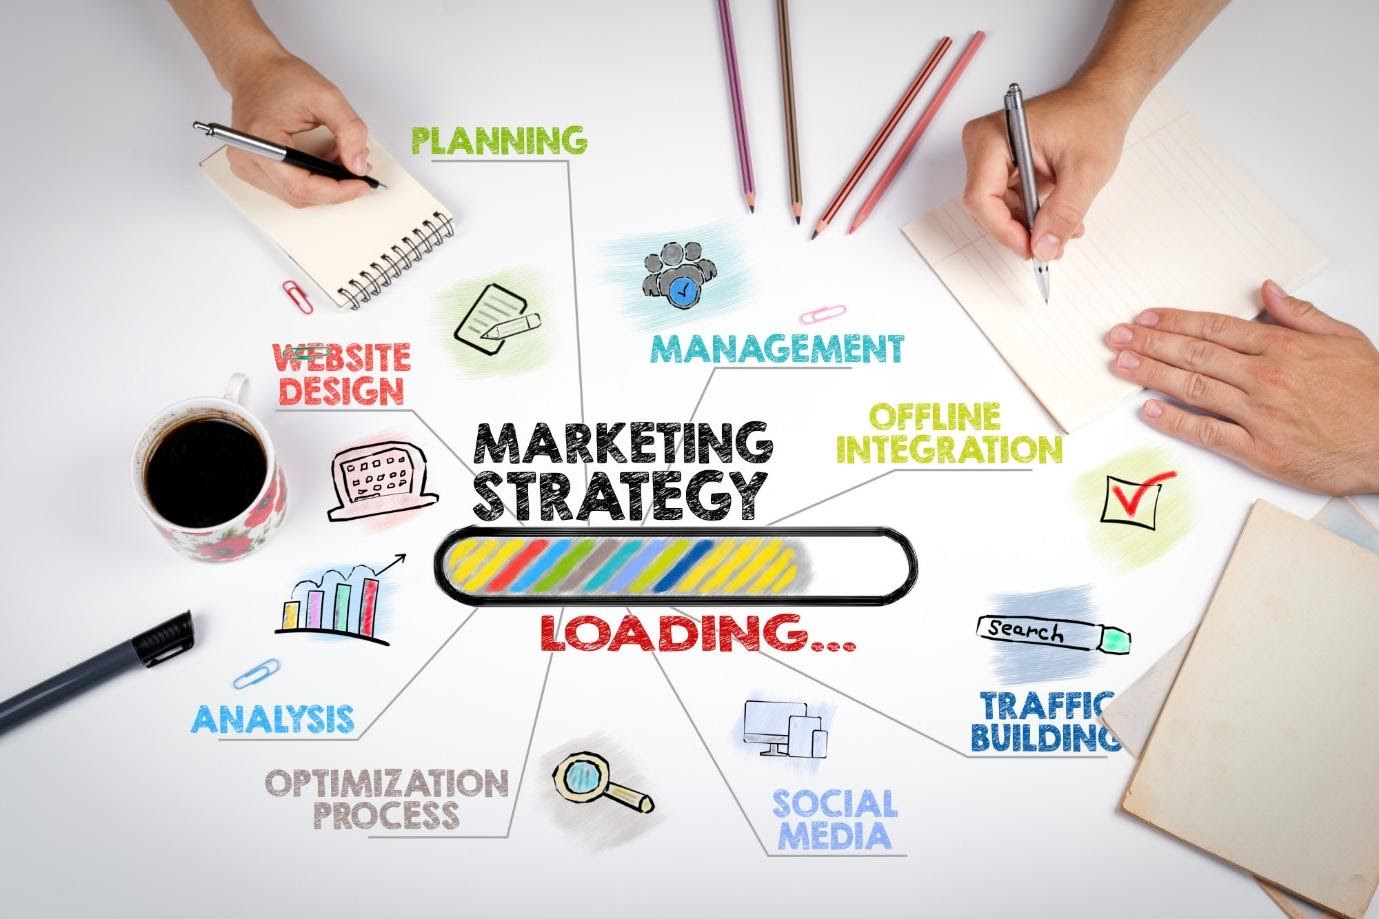 How to Find the Right Digital Marketing Strategy Template for You